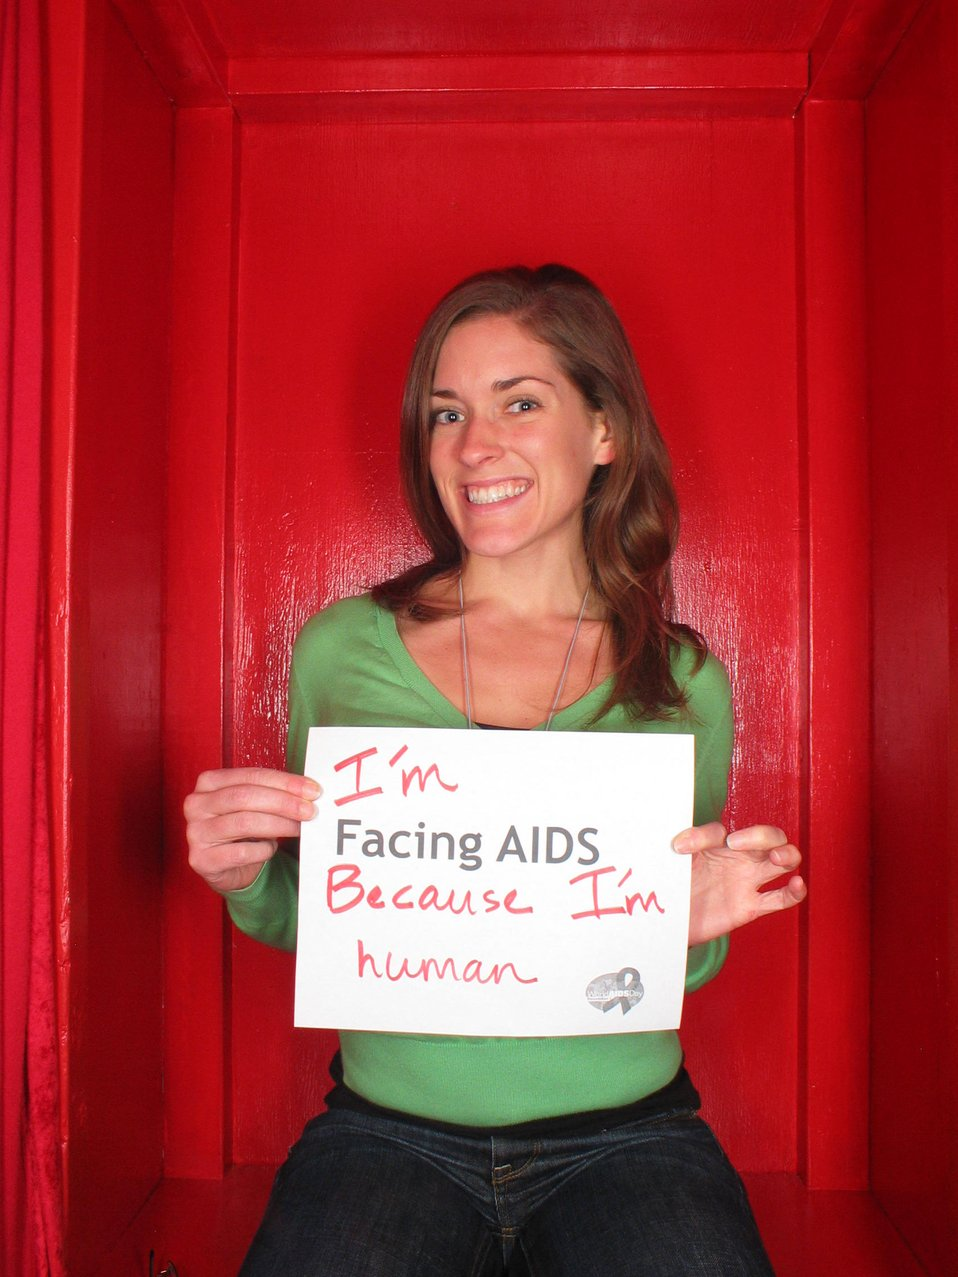 I'm Facing AIDS because I'm human.